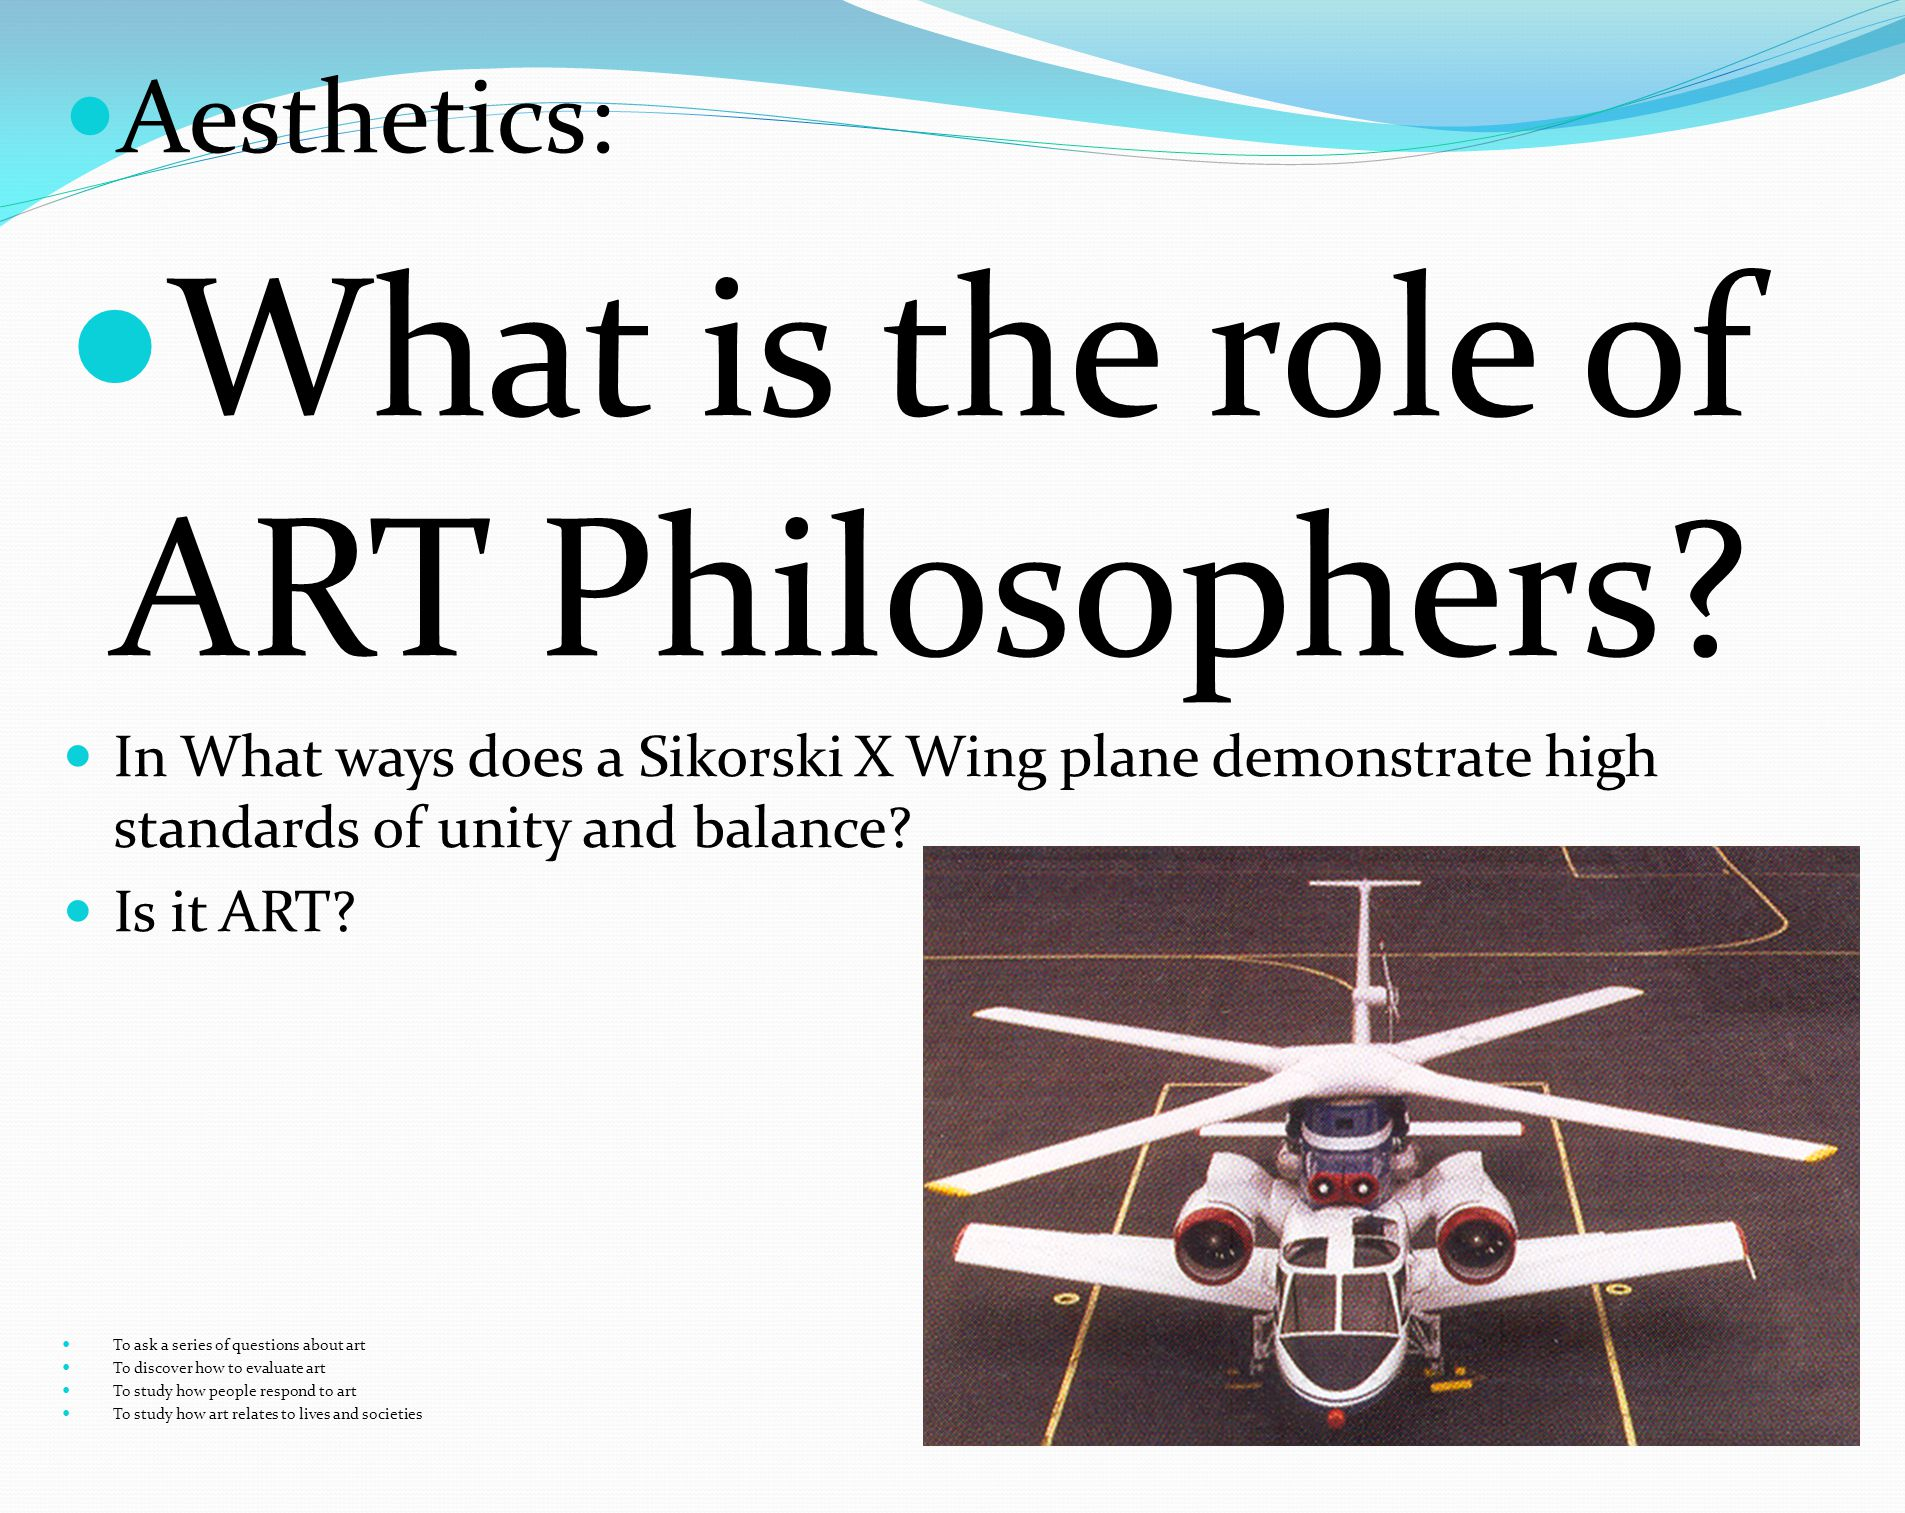 Aesthetics: What is the role of ART Philosophers? In What ways does a Sikorski X Wing plane demonstrate high standards of unity and balance? Is it ART